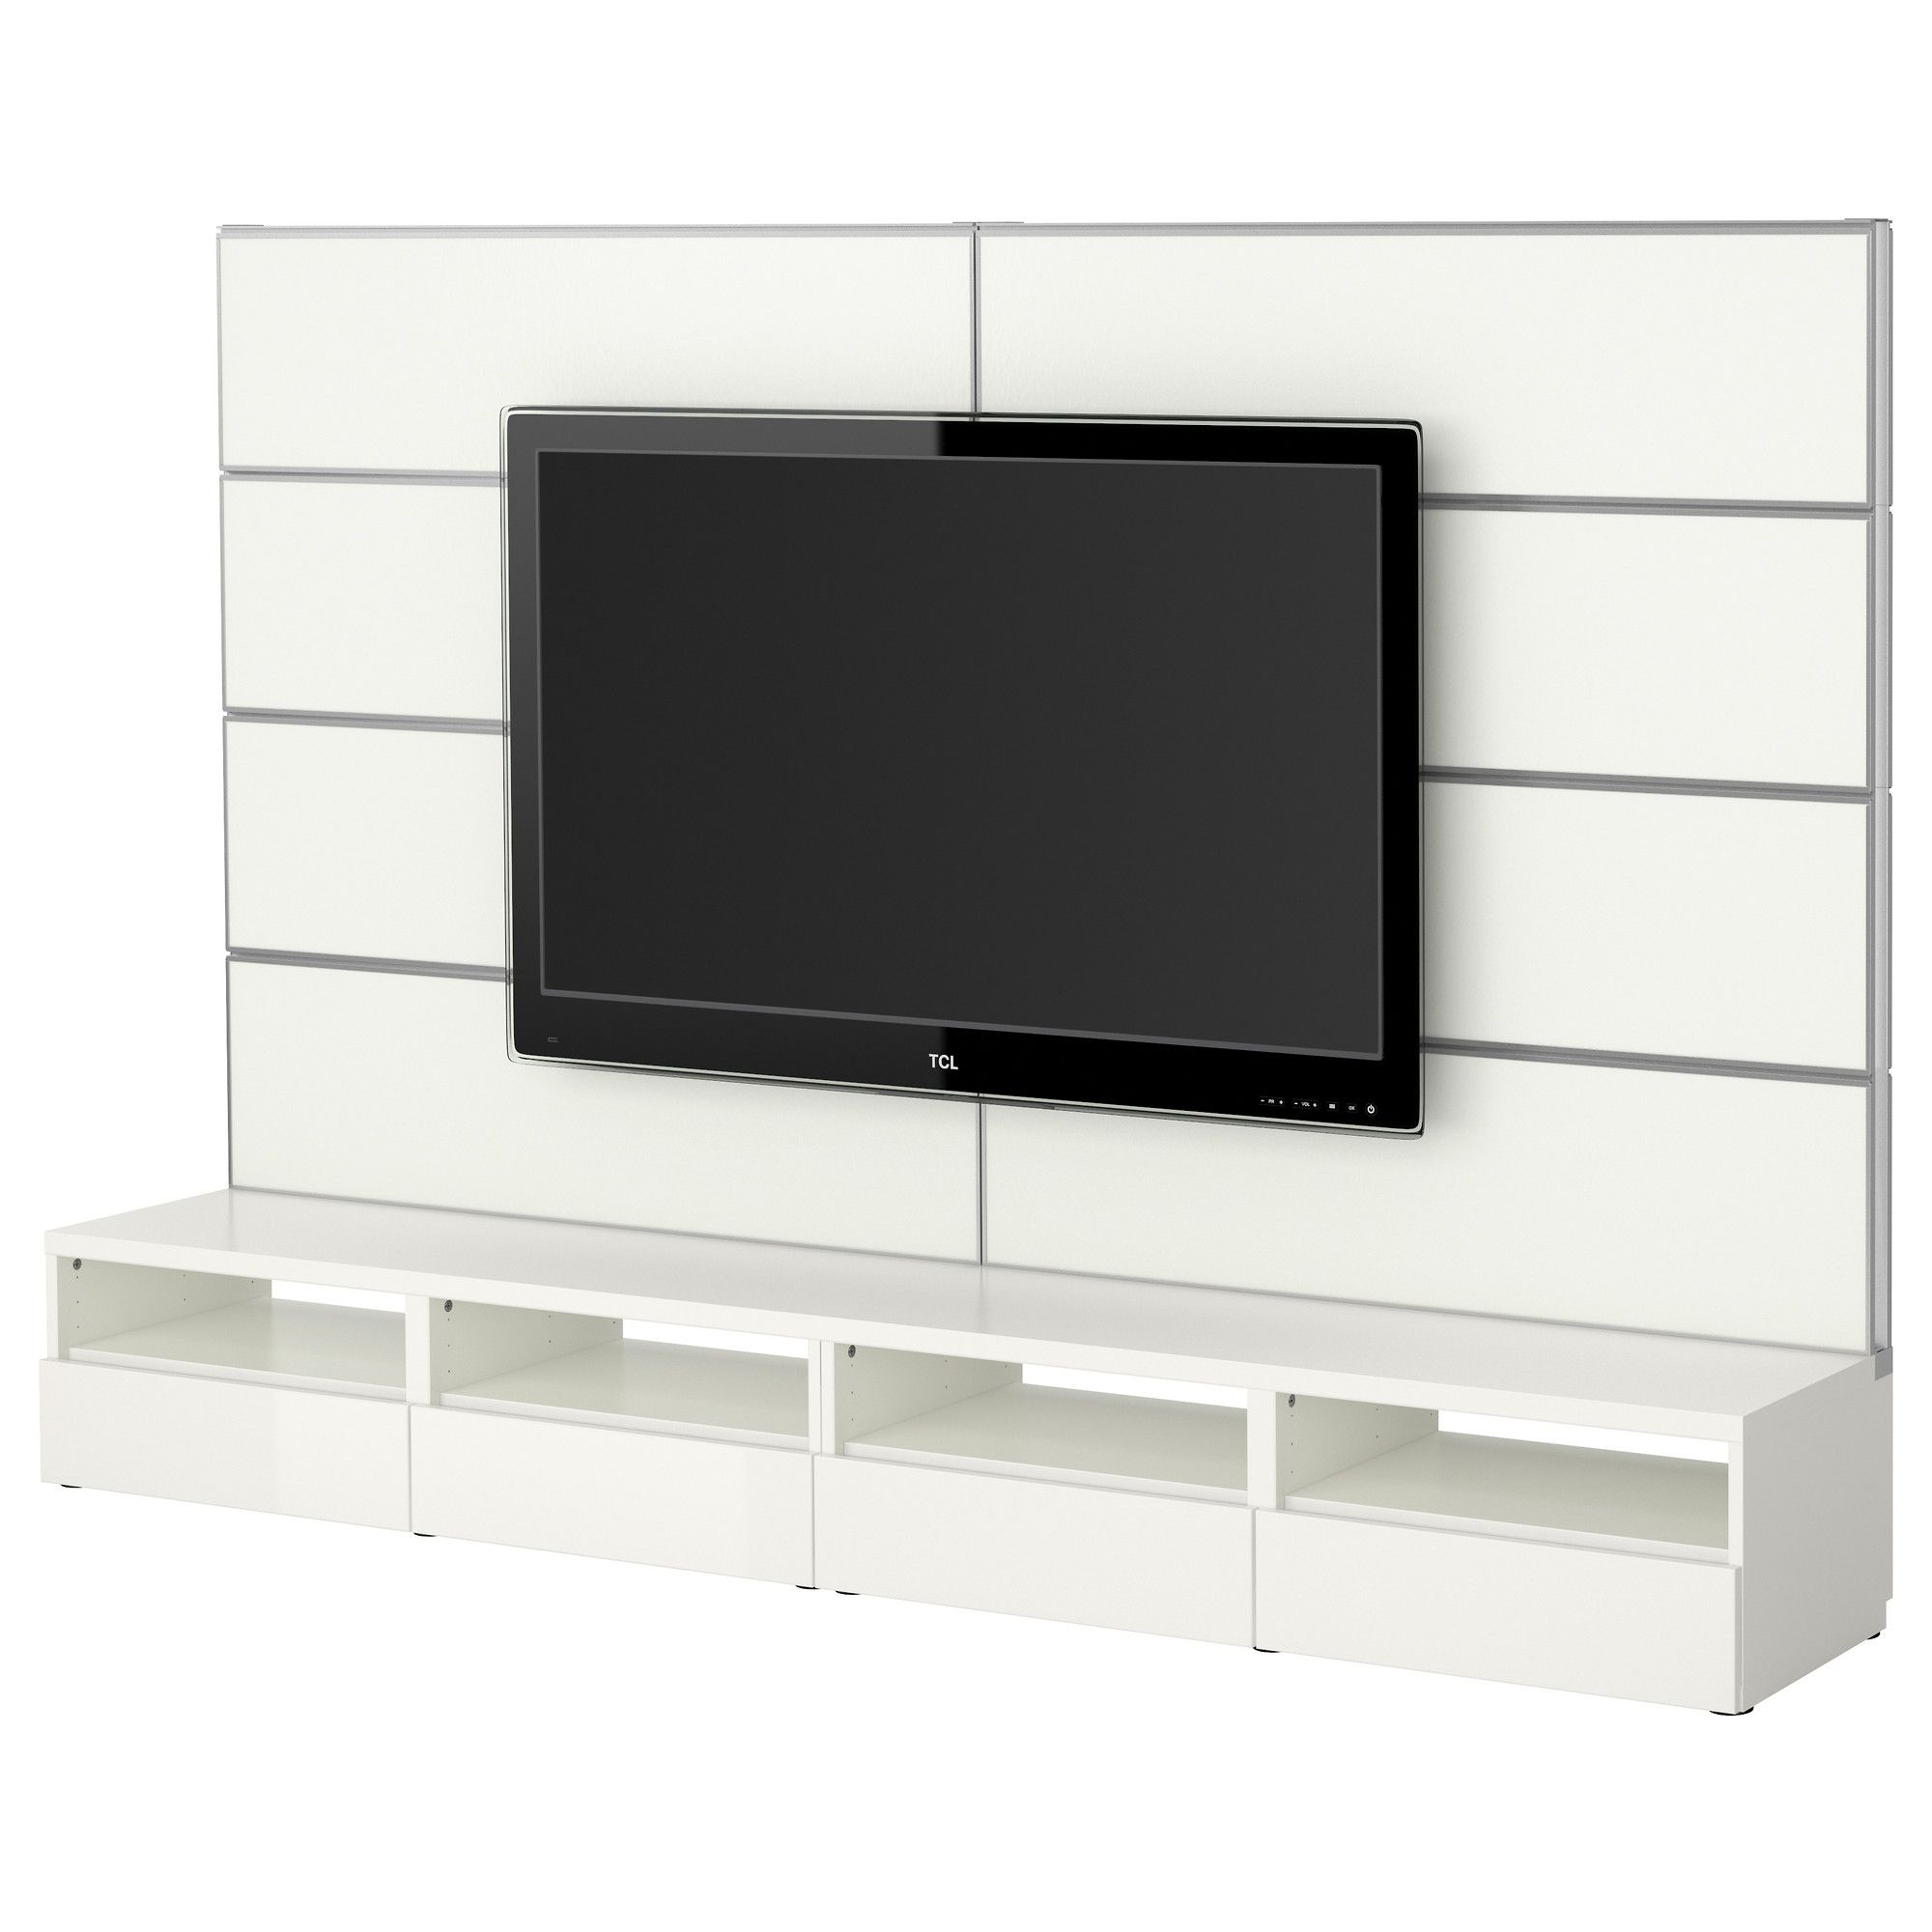 Best framst tv storage combination white ikea apt for Meuble console ikea